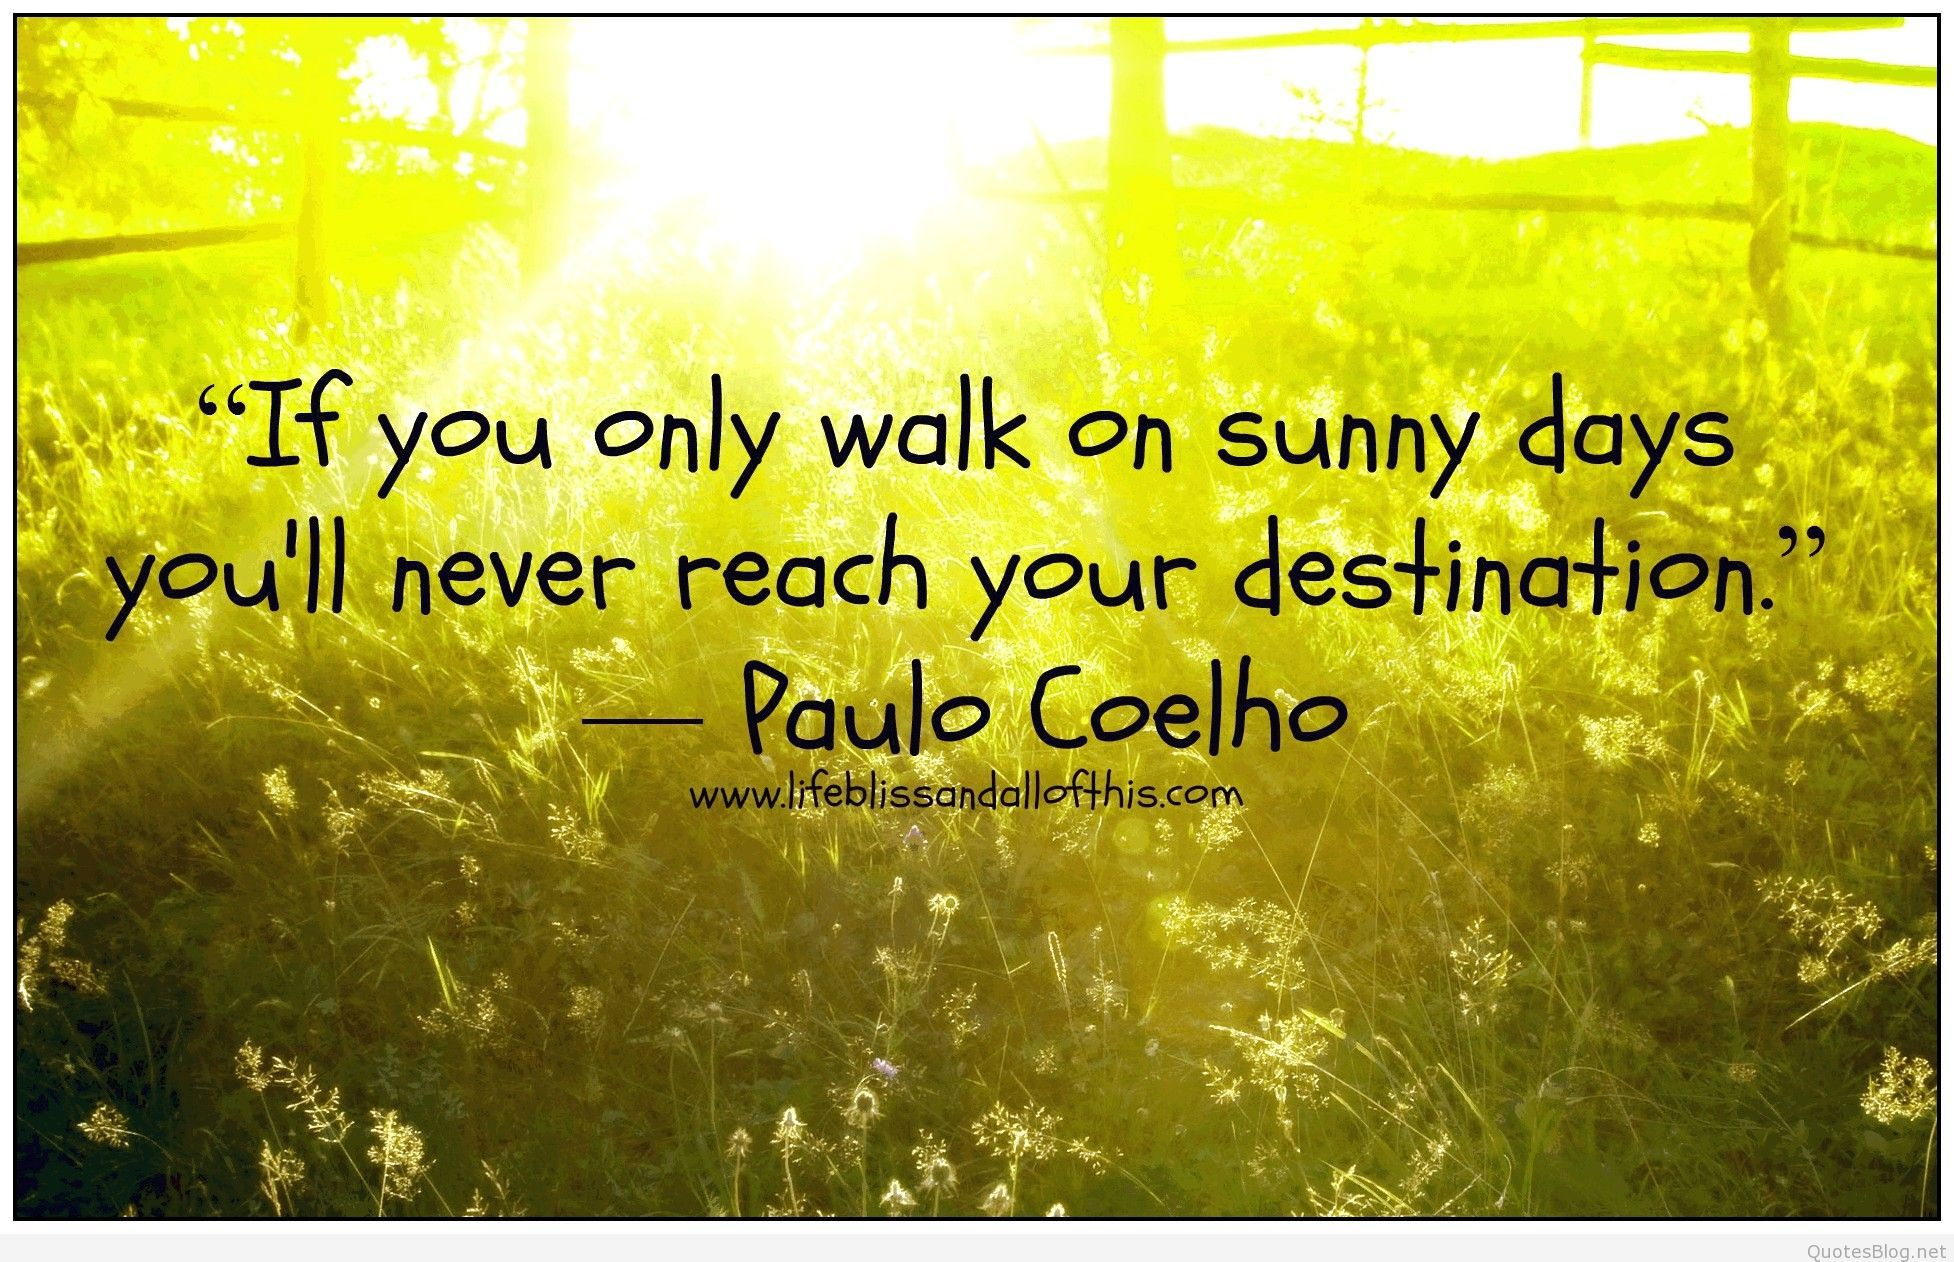 Sunny Day Quotes Sunny Day Flowers | Quotes | Pinterest | Quotes, Sunny day quotes  Sunny Day Quotes